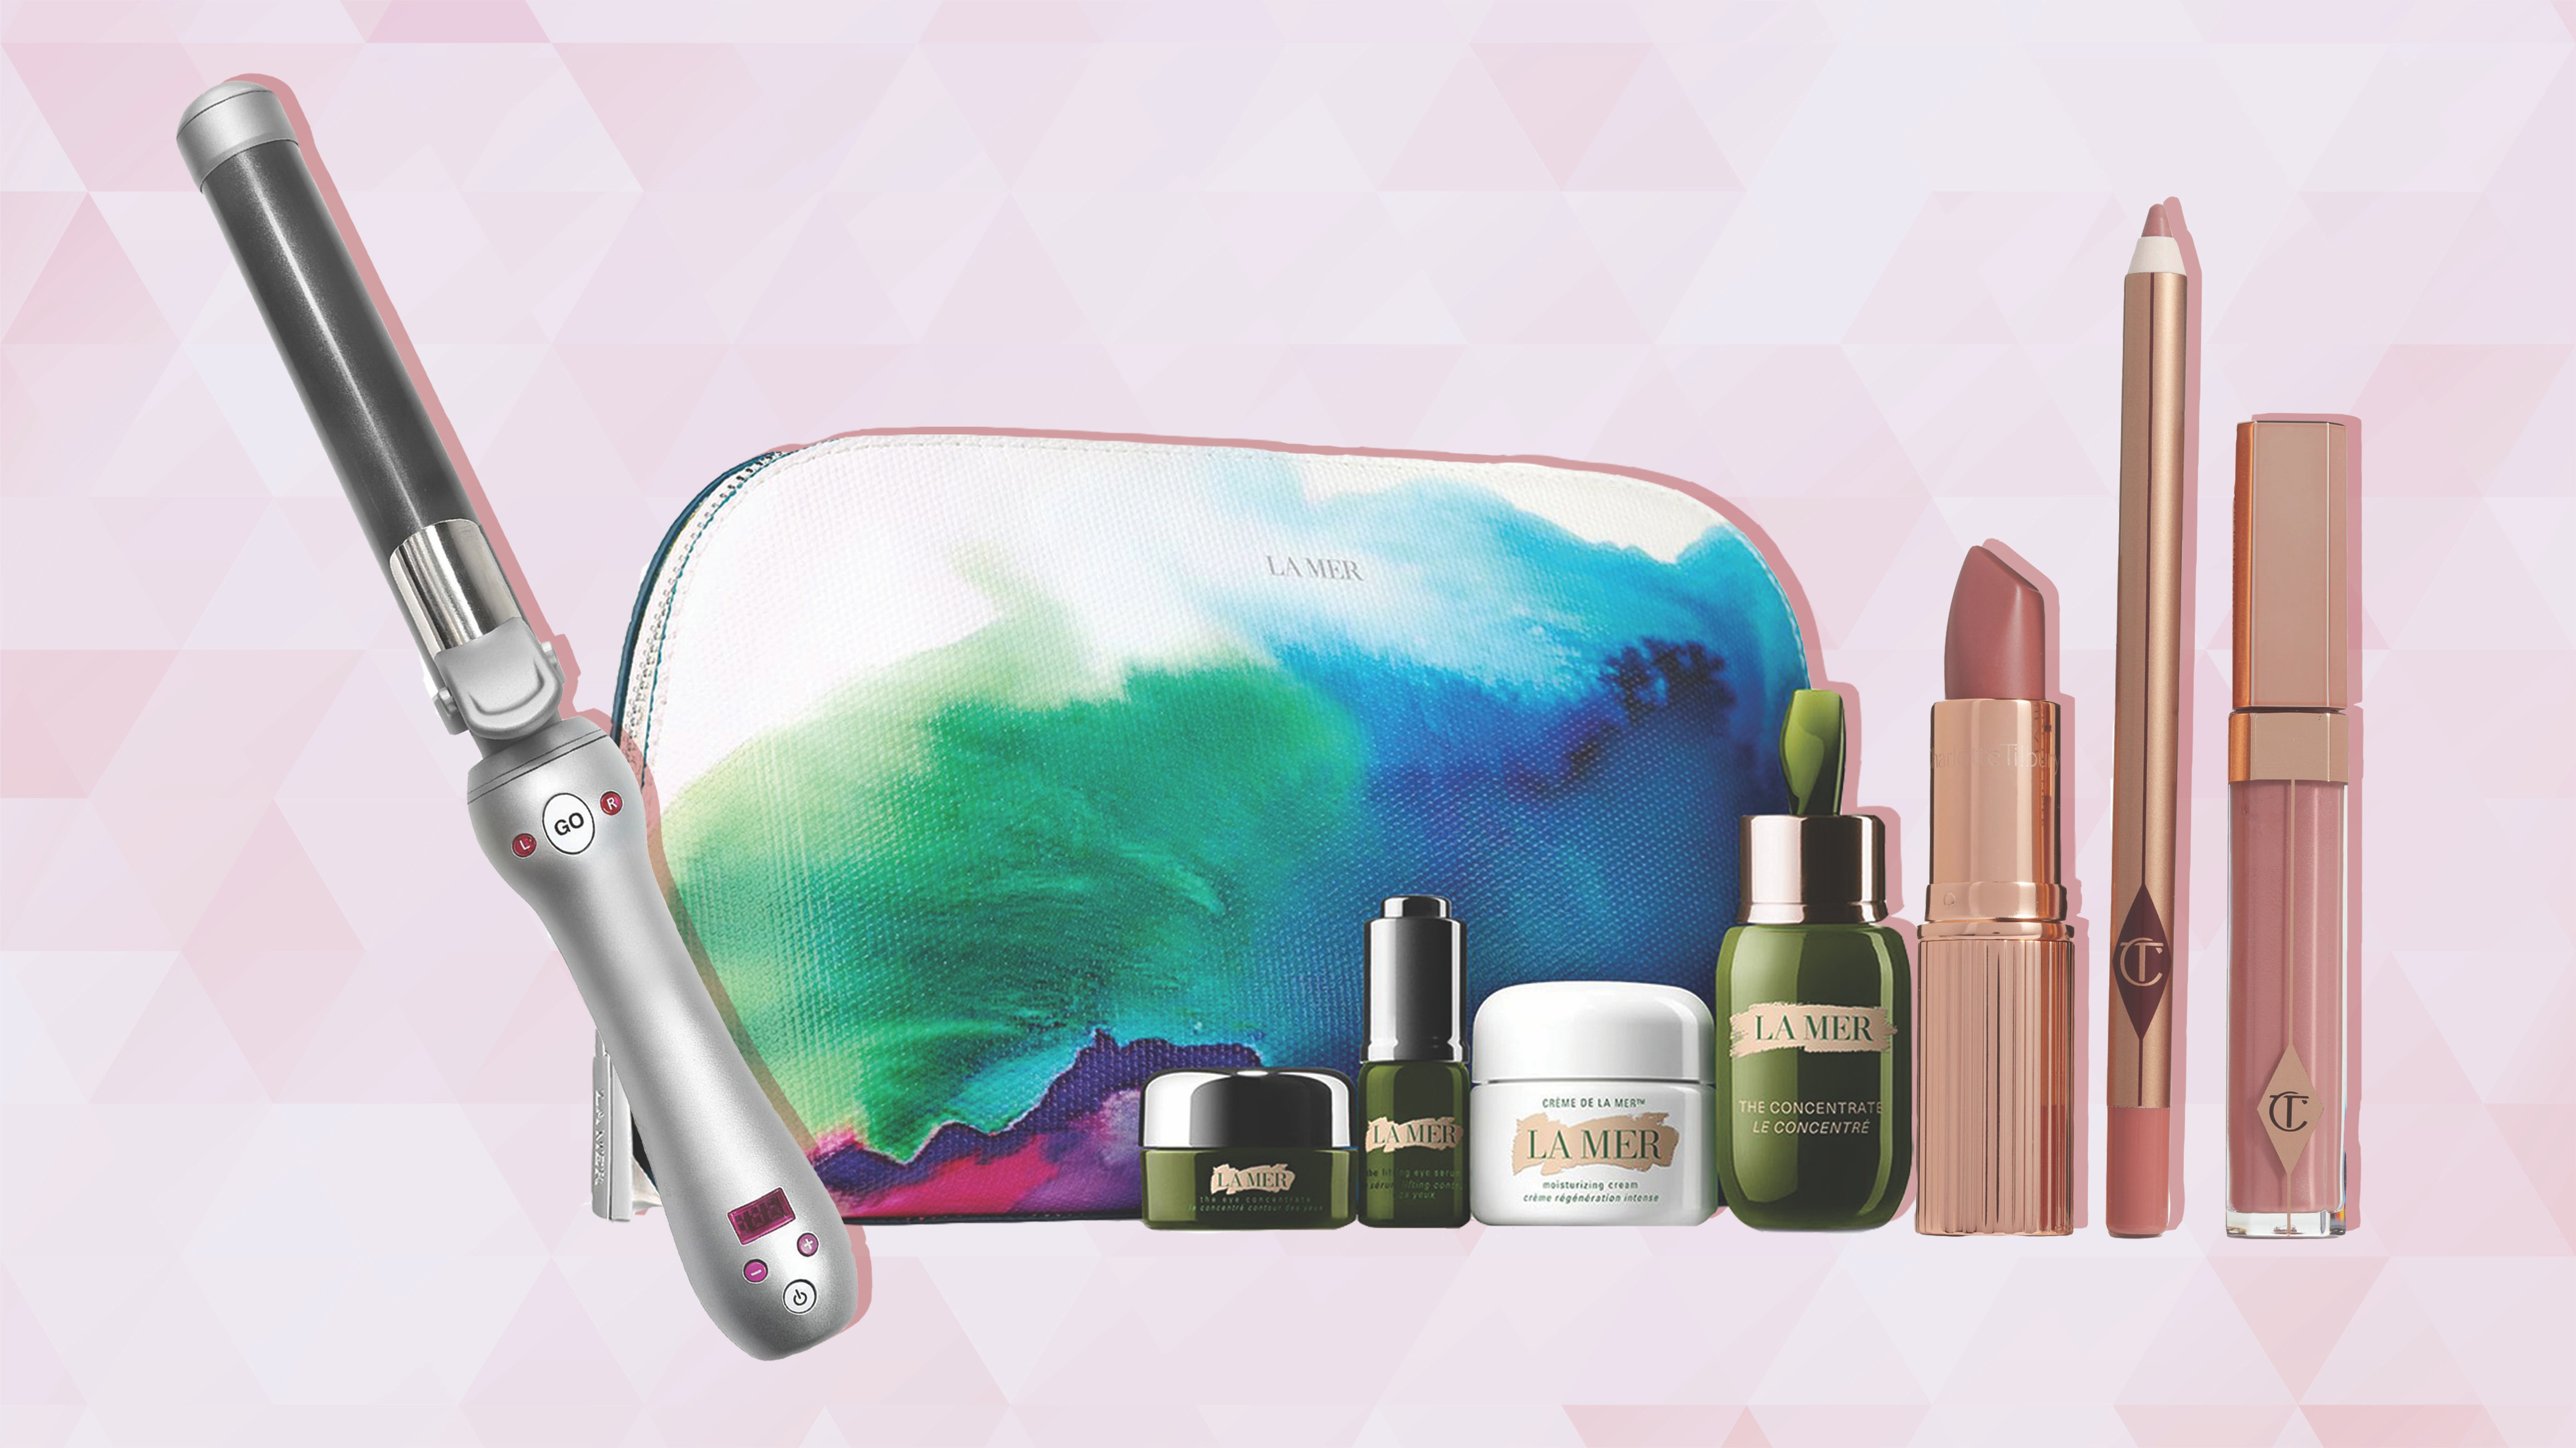 8 Beauty Exclusives You Should Snap Up at the Nordstrom Anniversary Sale